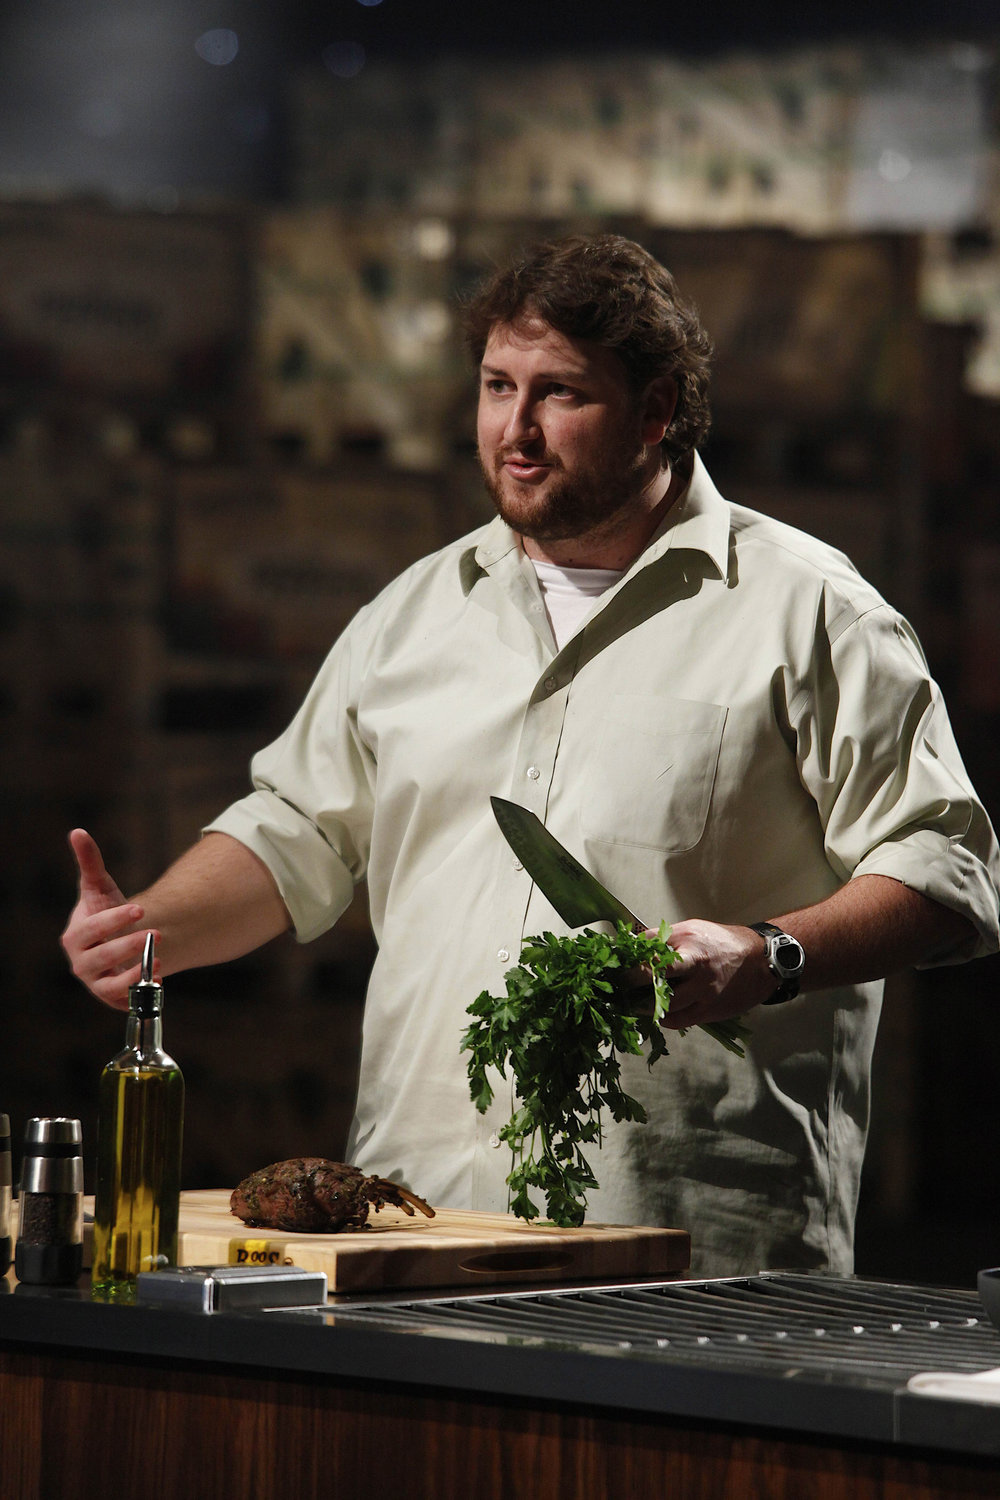 Jay Ducote on Season 2 of Masterchef on Fox